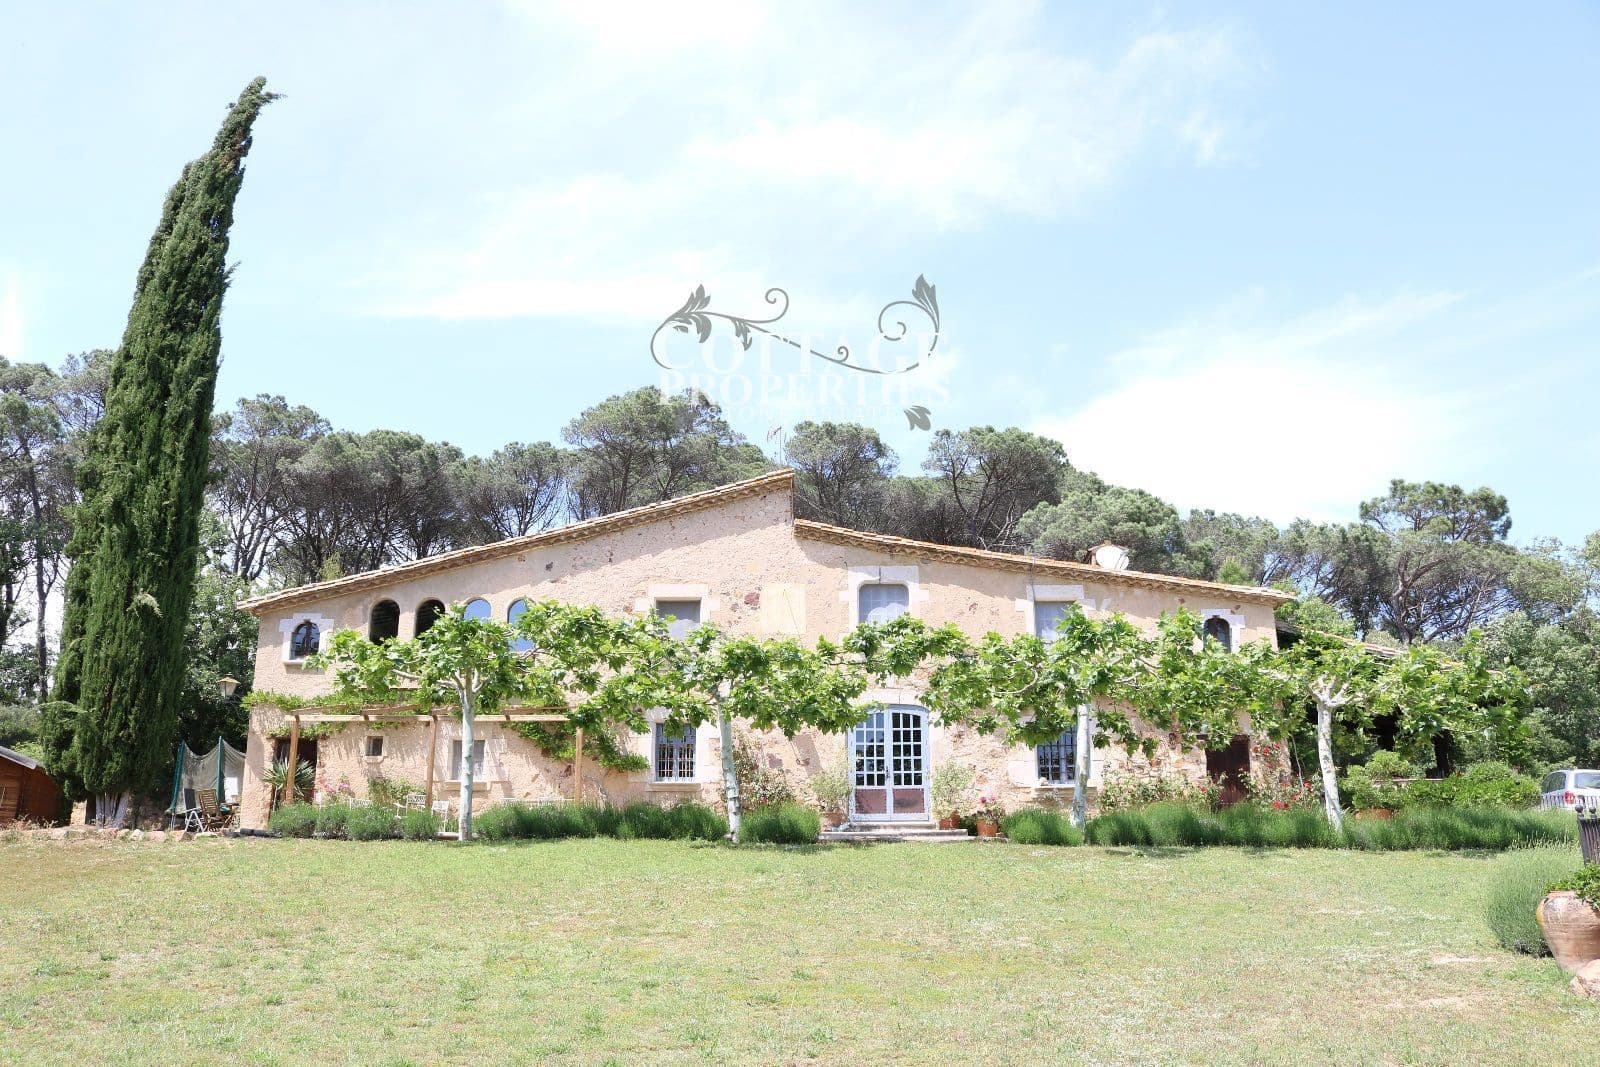 7 bedroom Finca/Country House for sale in Caldes de Malavella with pool - € 1,050,000 (Ref: 5707371)